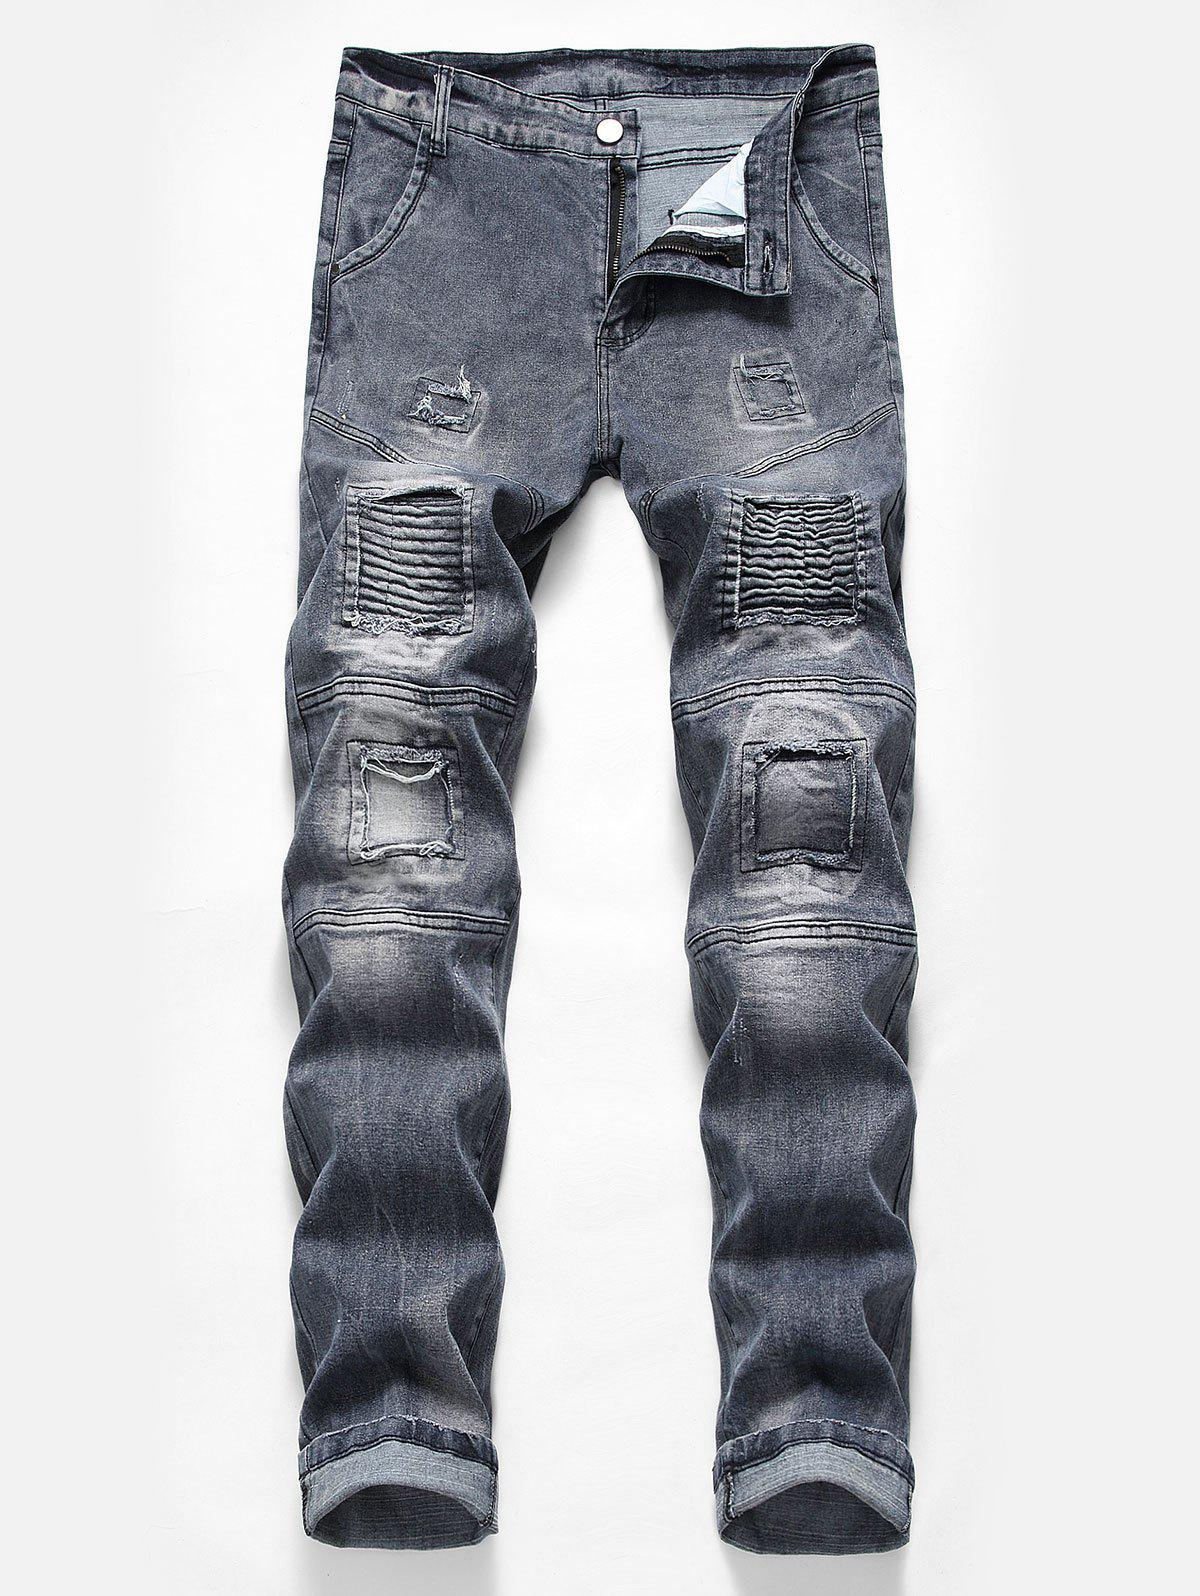 Trendy Casual Pleated Patchwork Washed Biker Jeans